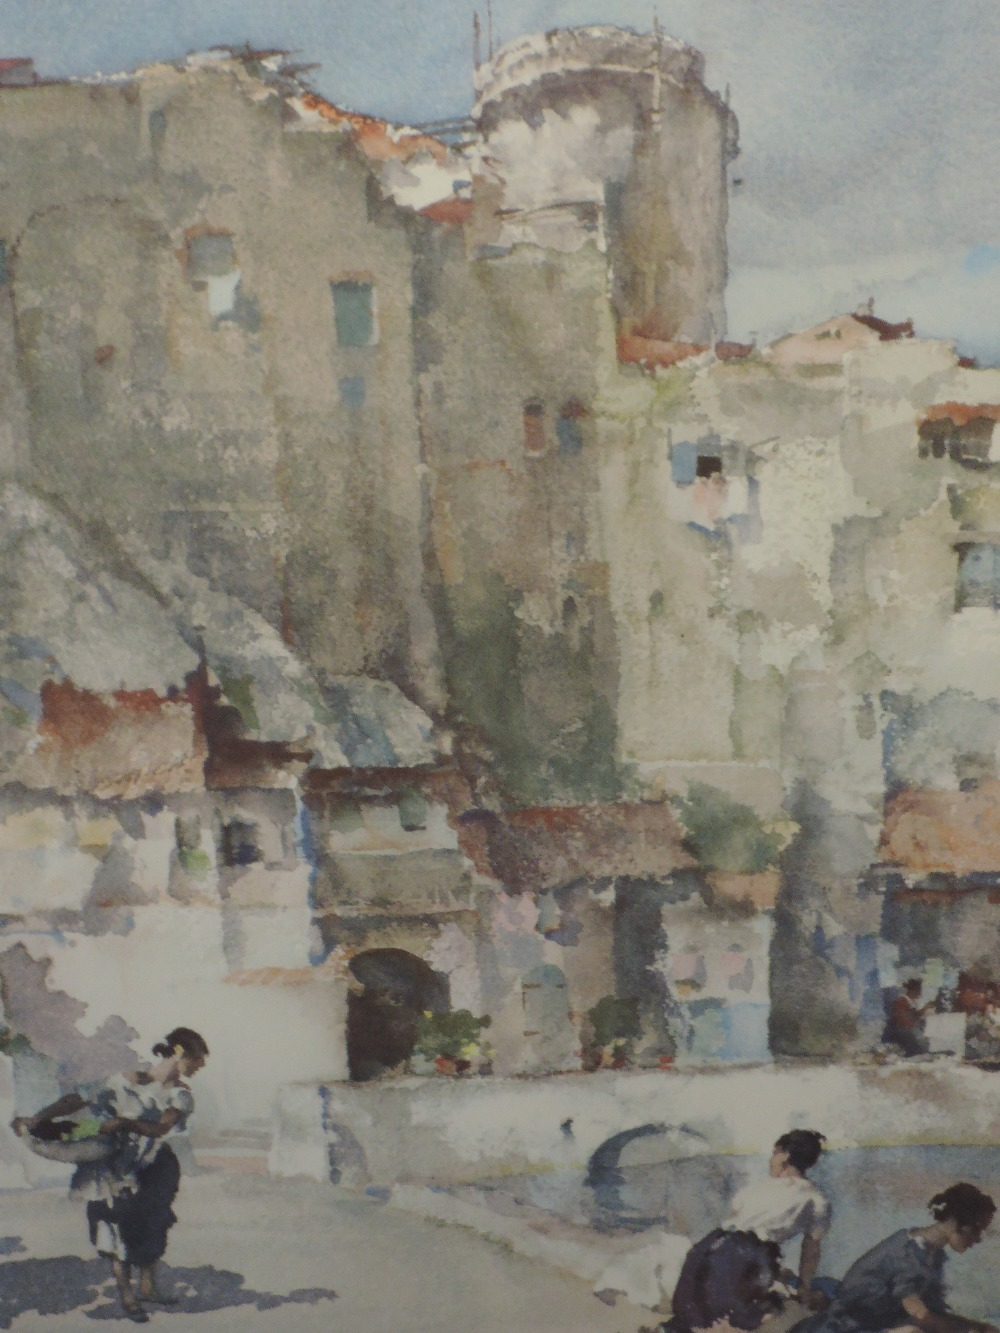 A limited edition print after William Russell Flint, Wash Day, numbered 166/850, 53 x 37cm framed